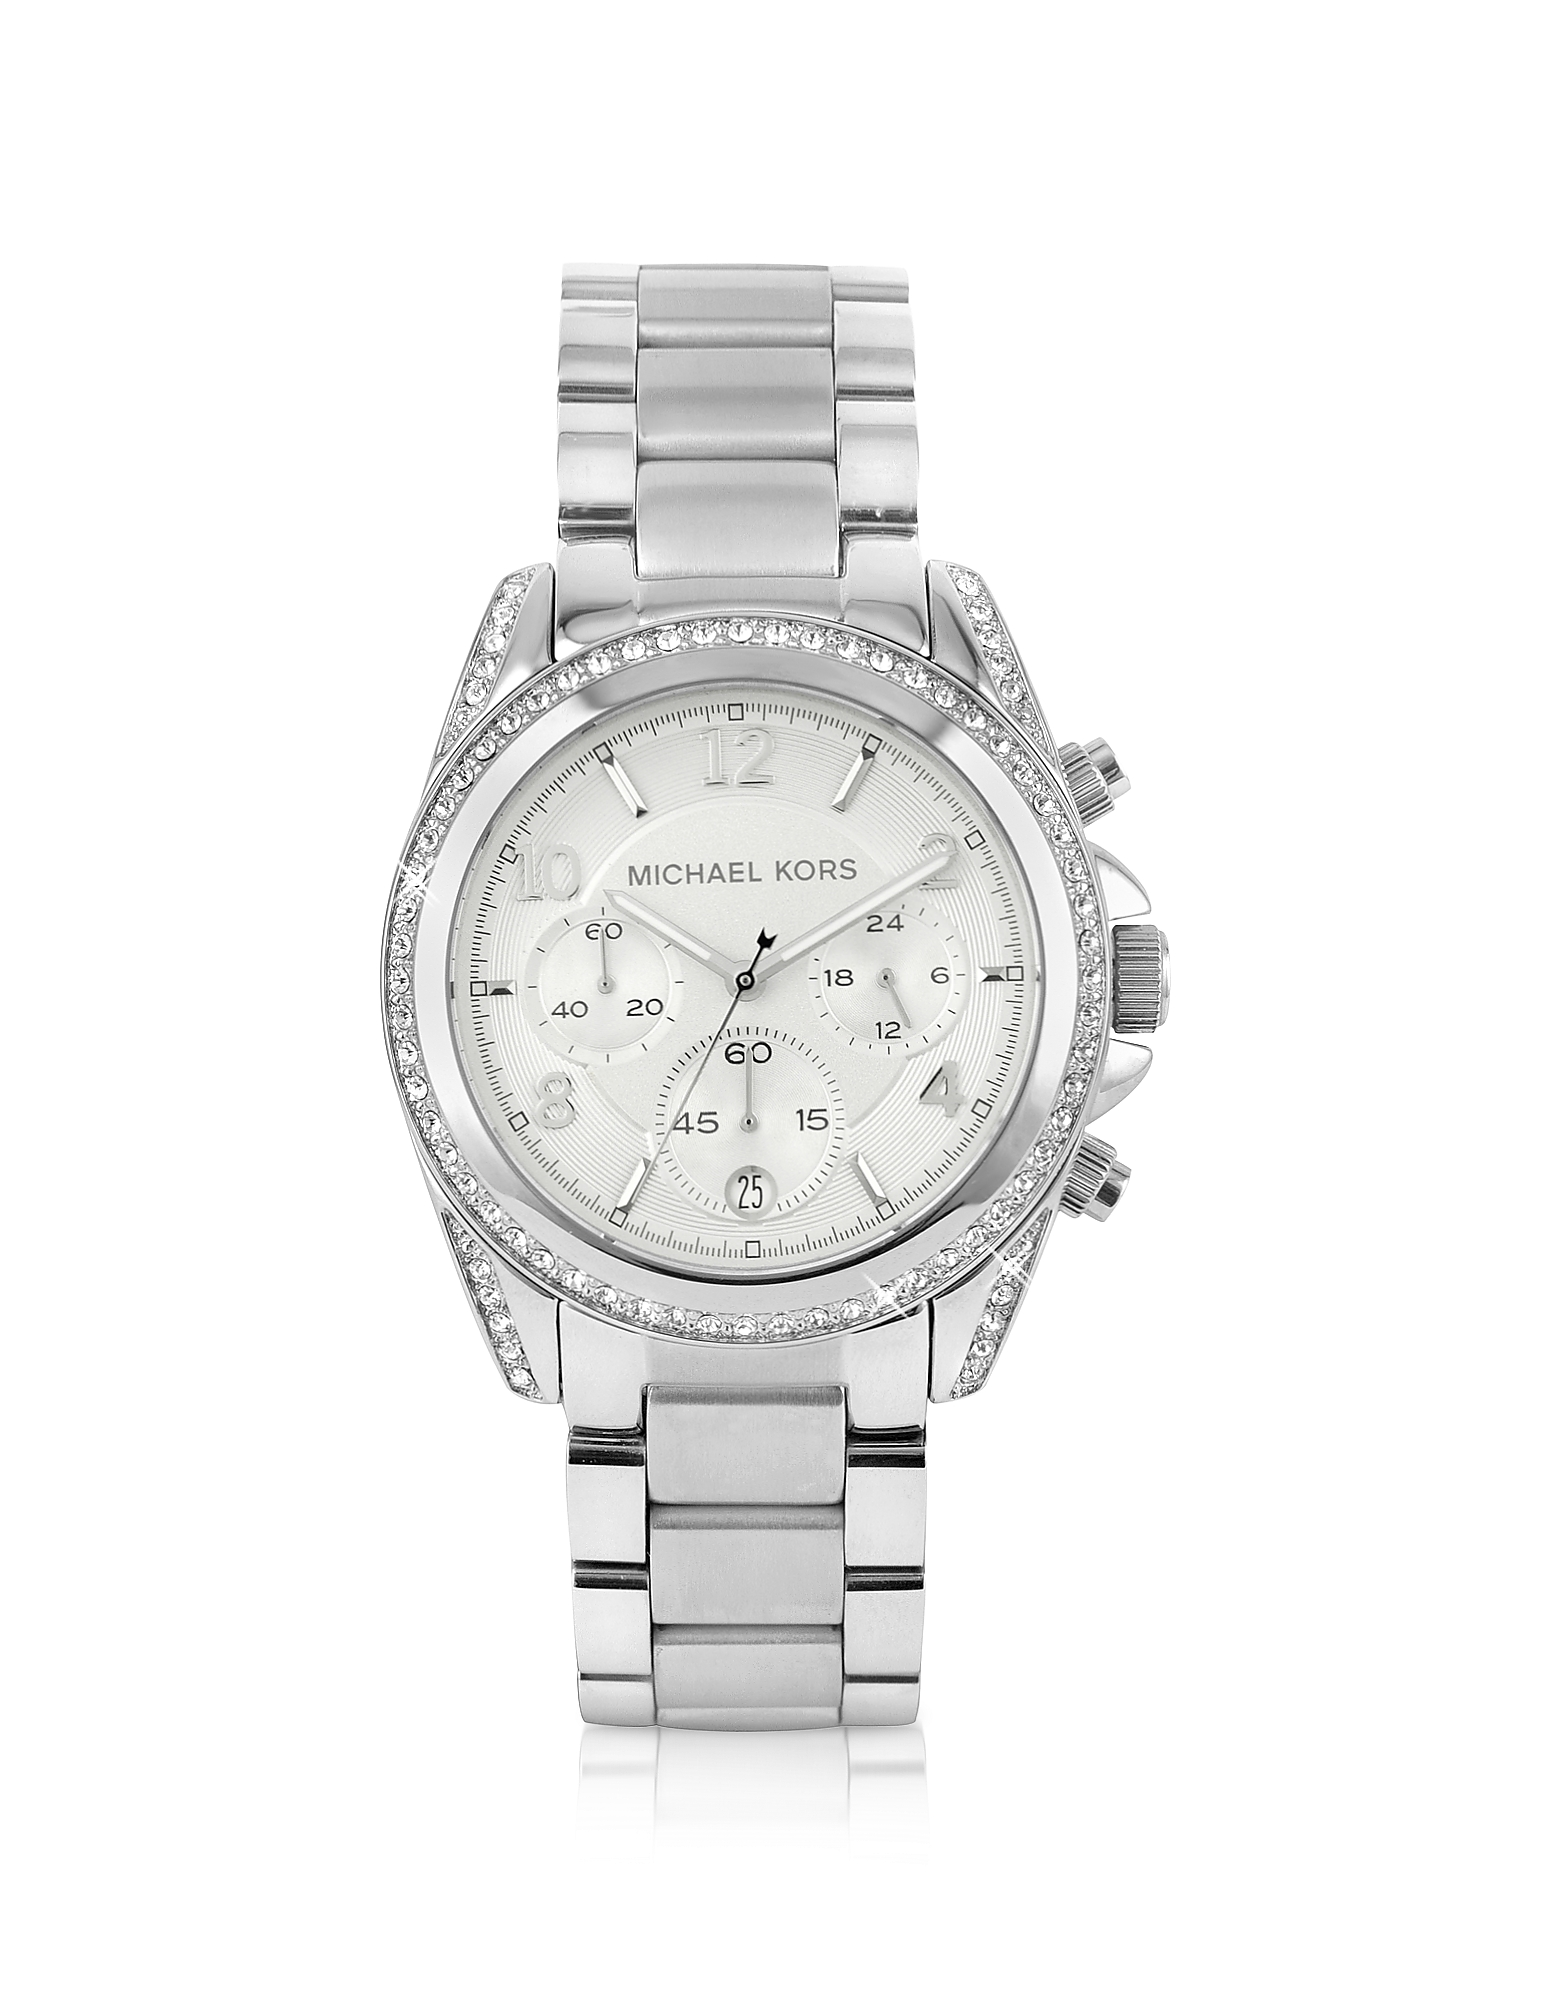 Michael Kors Women's Watches, Silver Runway Watch with Glitz